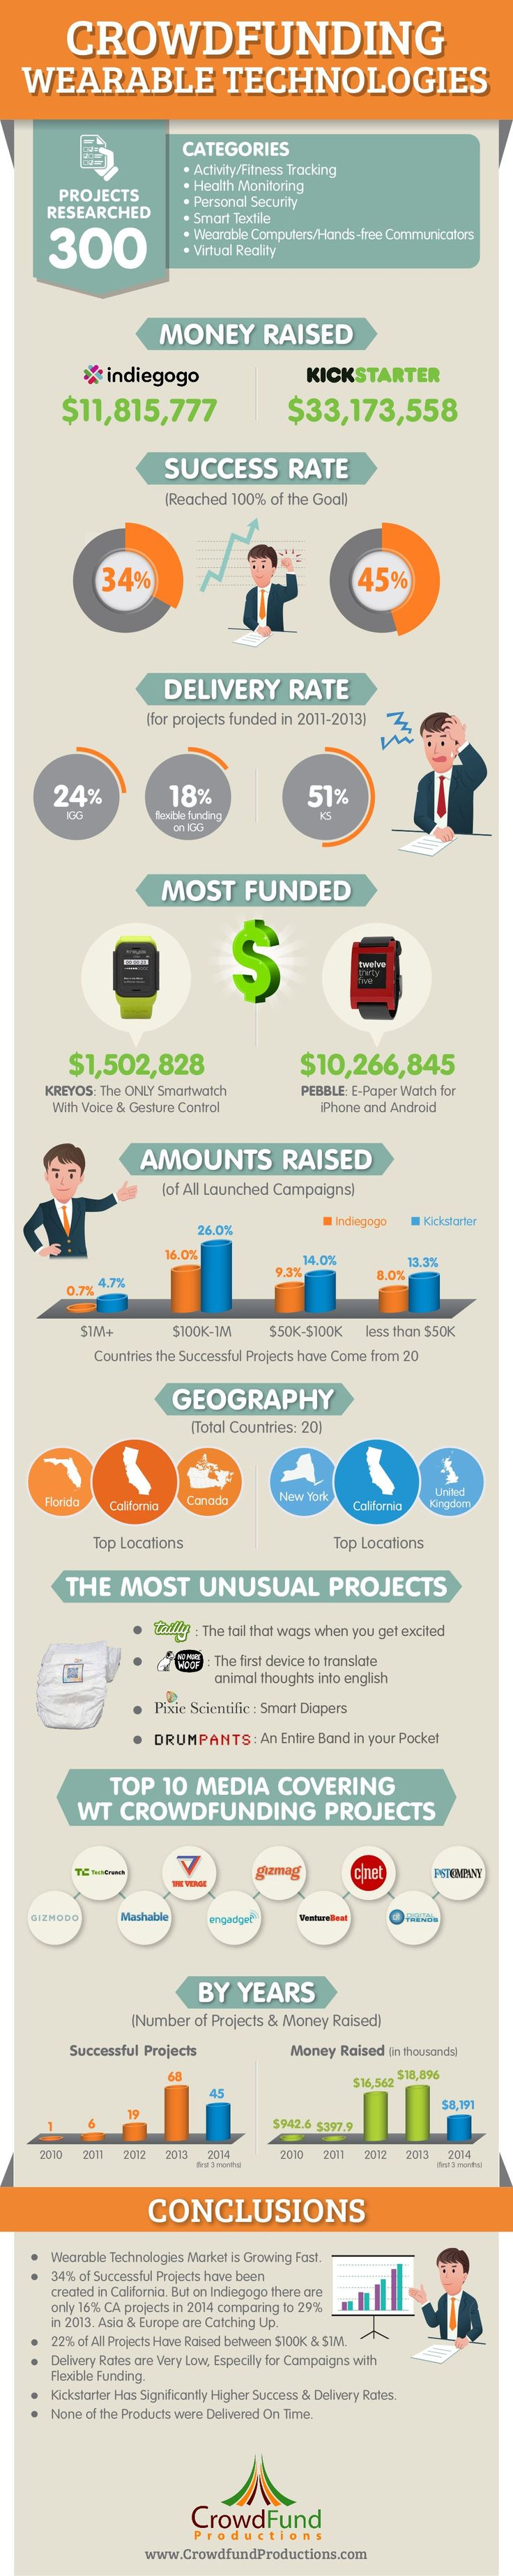 #Crowdfunding Wearables [#Infographic]